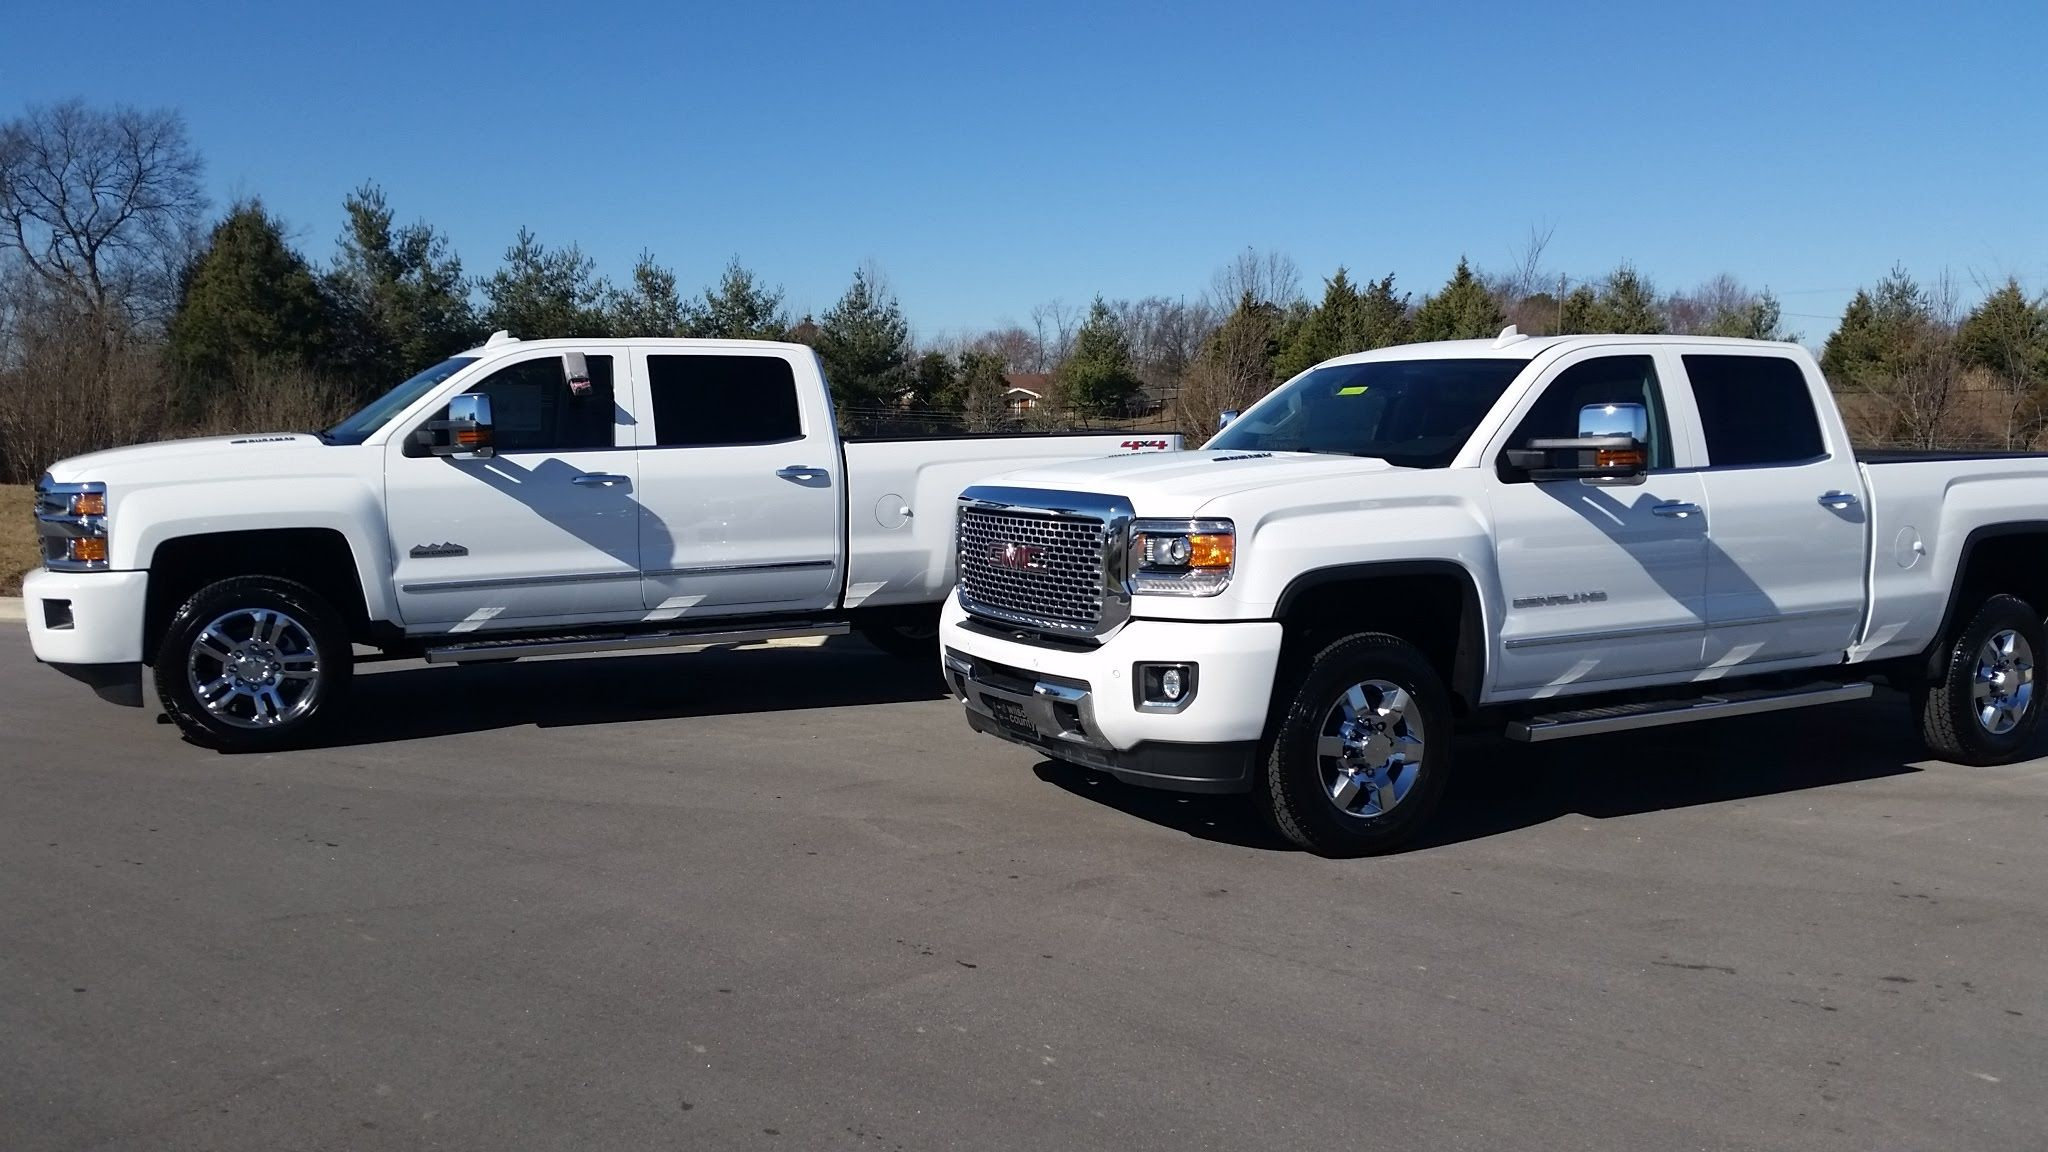 2015 Gmc Denali Hd Vs Chevy 2500 Hd High Country Gmc Sierra Gmc Sierra 1500 Gmc